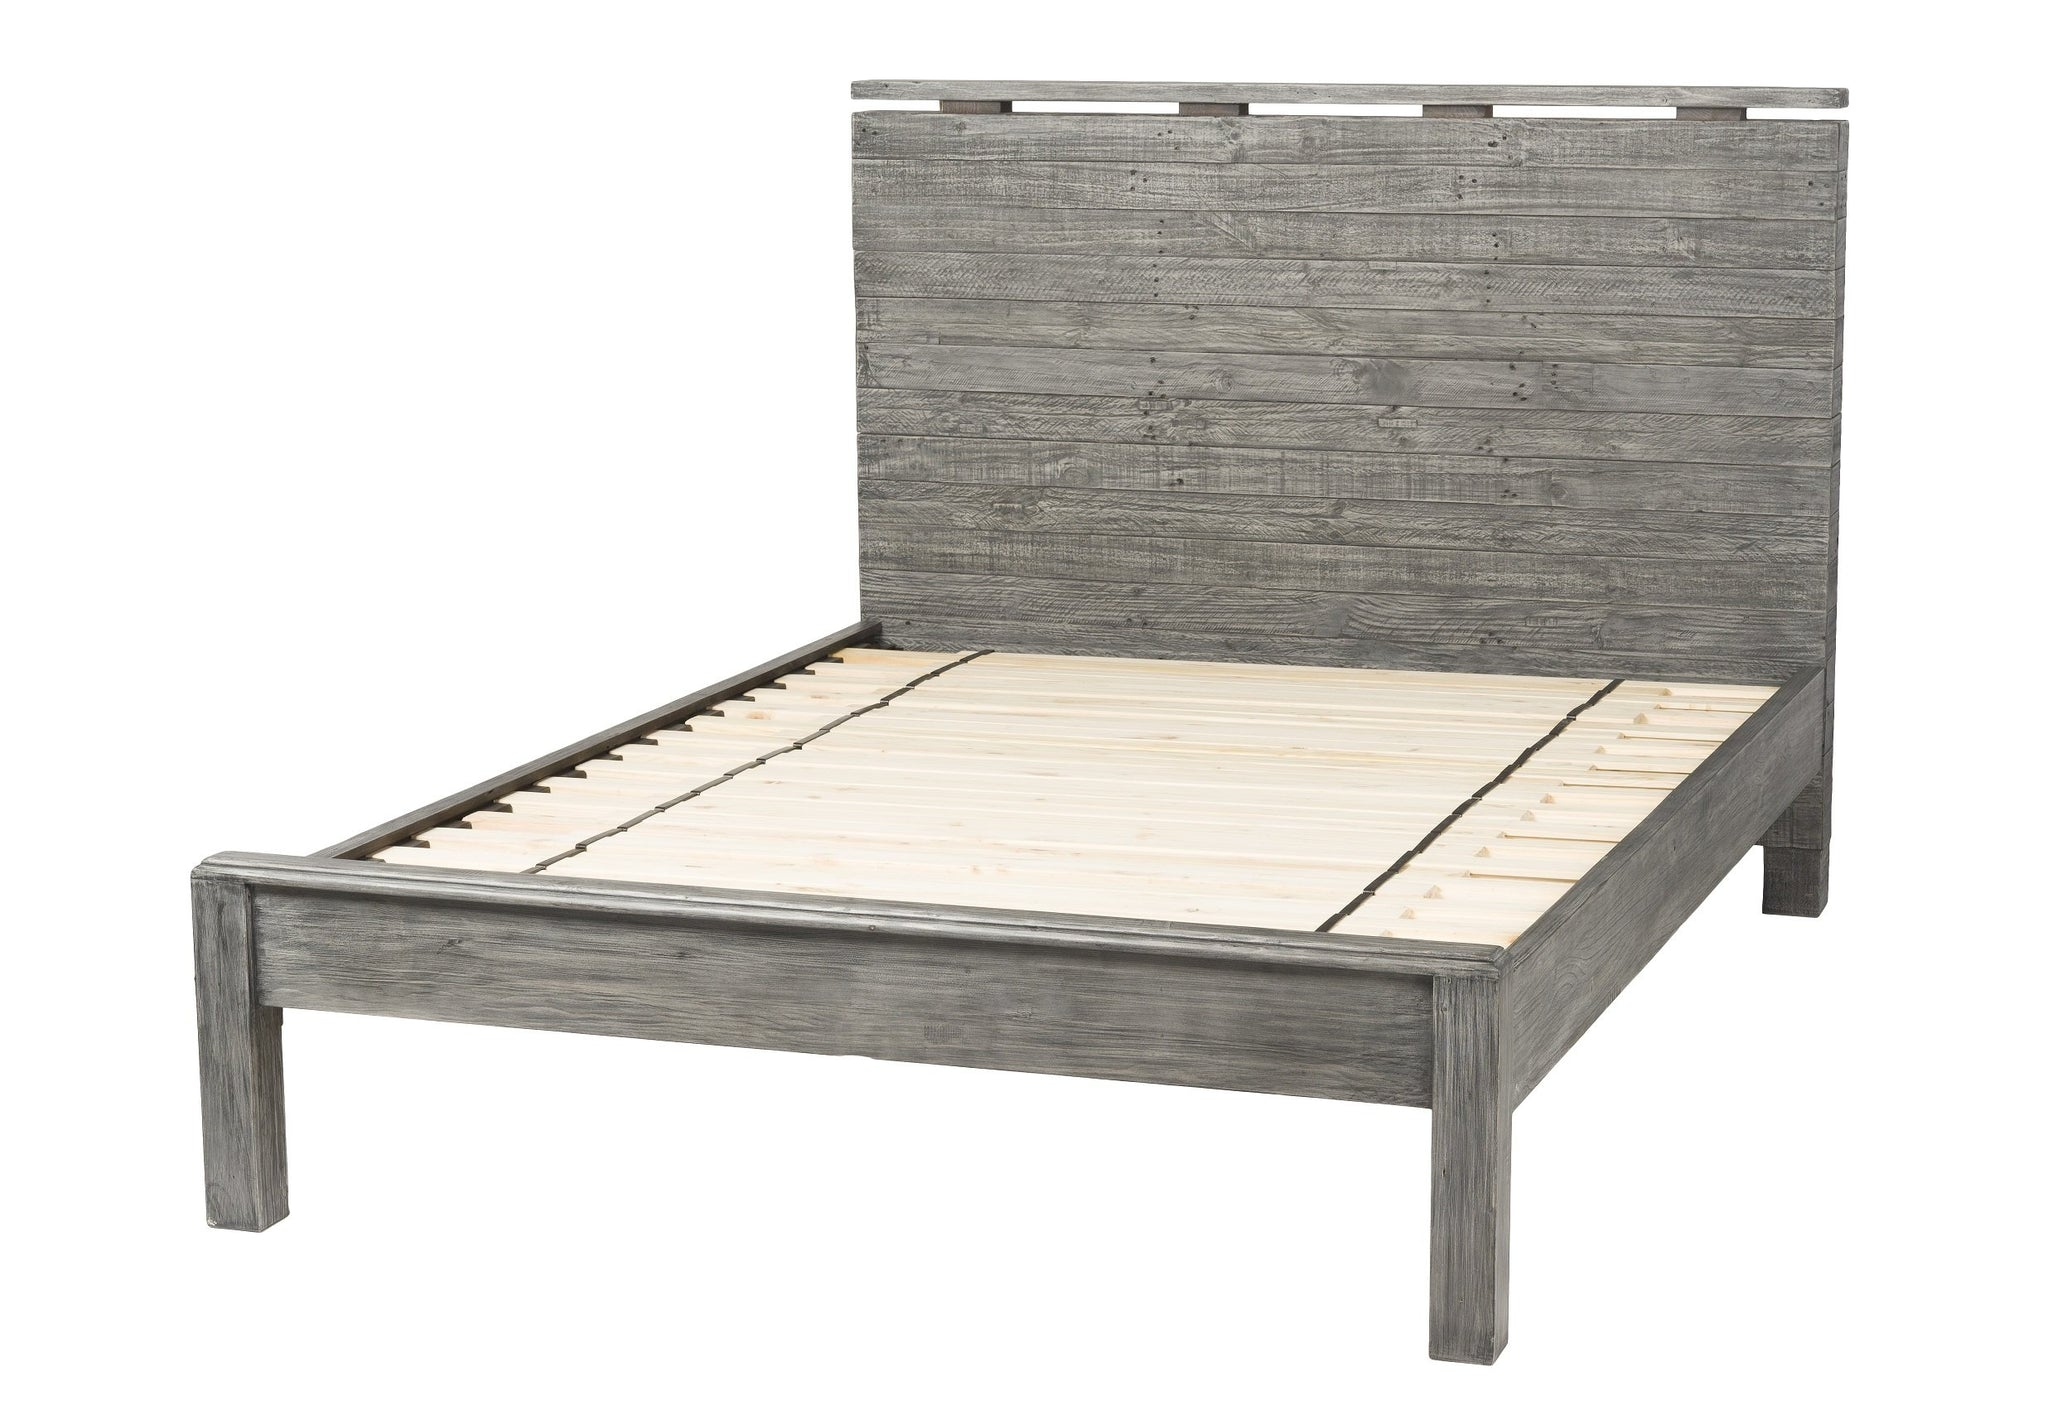 Picture of Tuscan Spring King Bed - Grey Wash